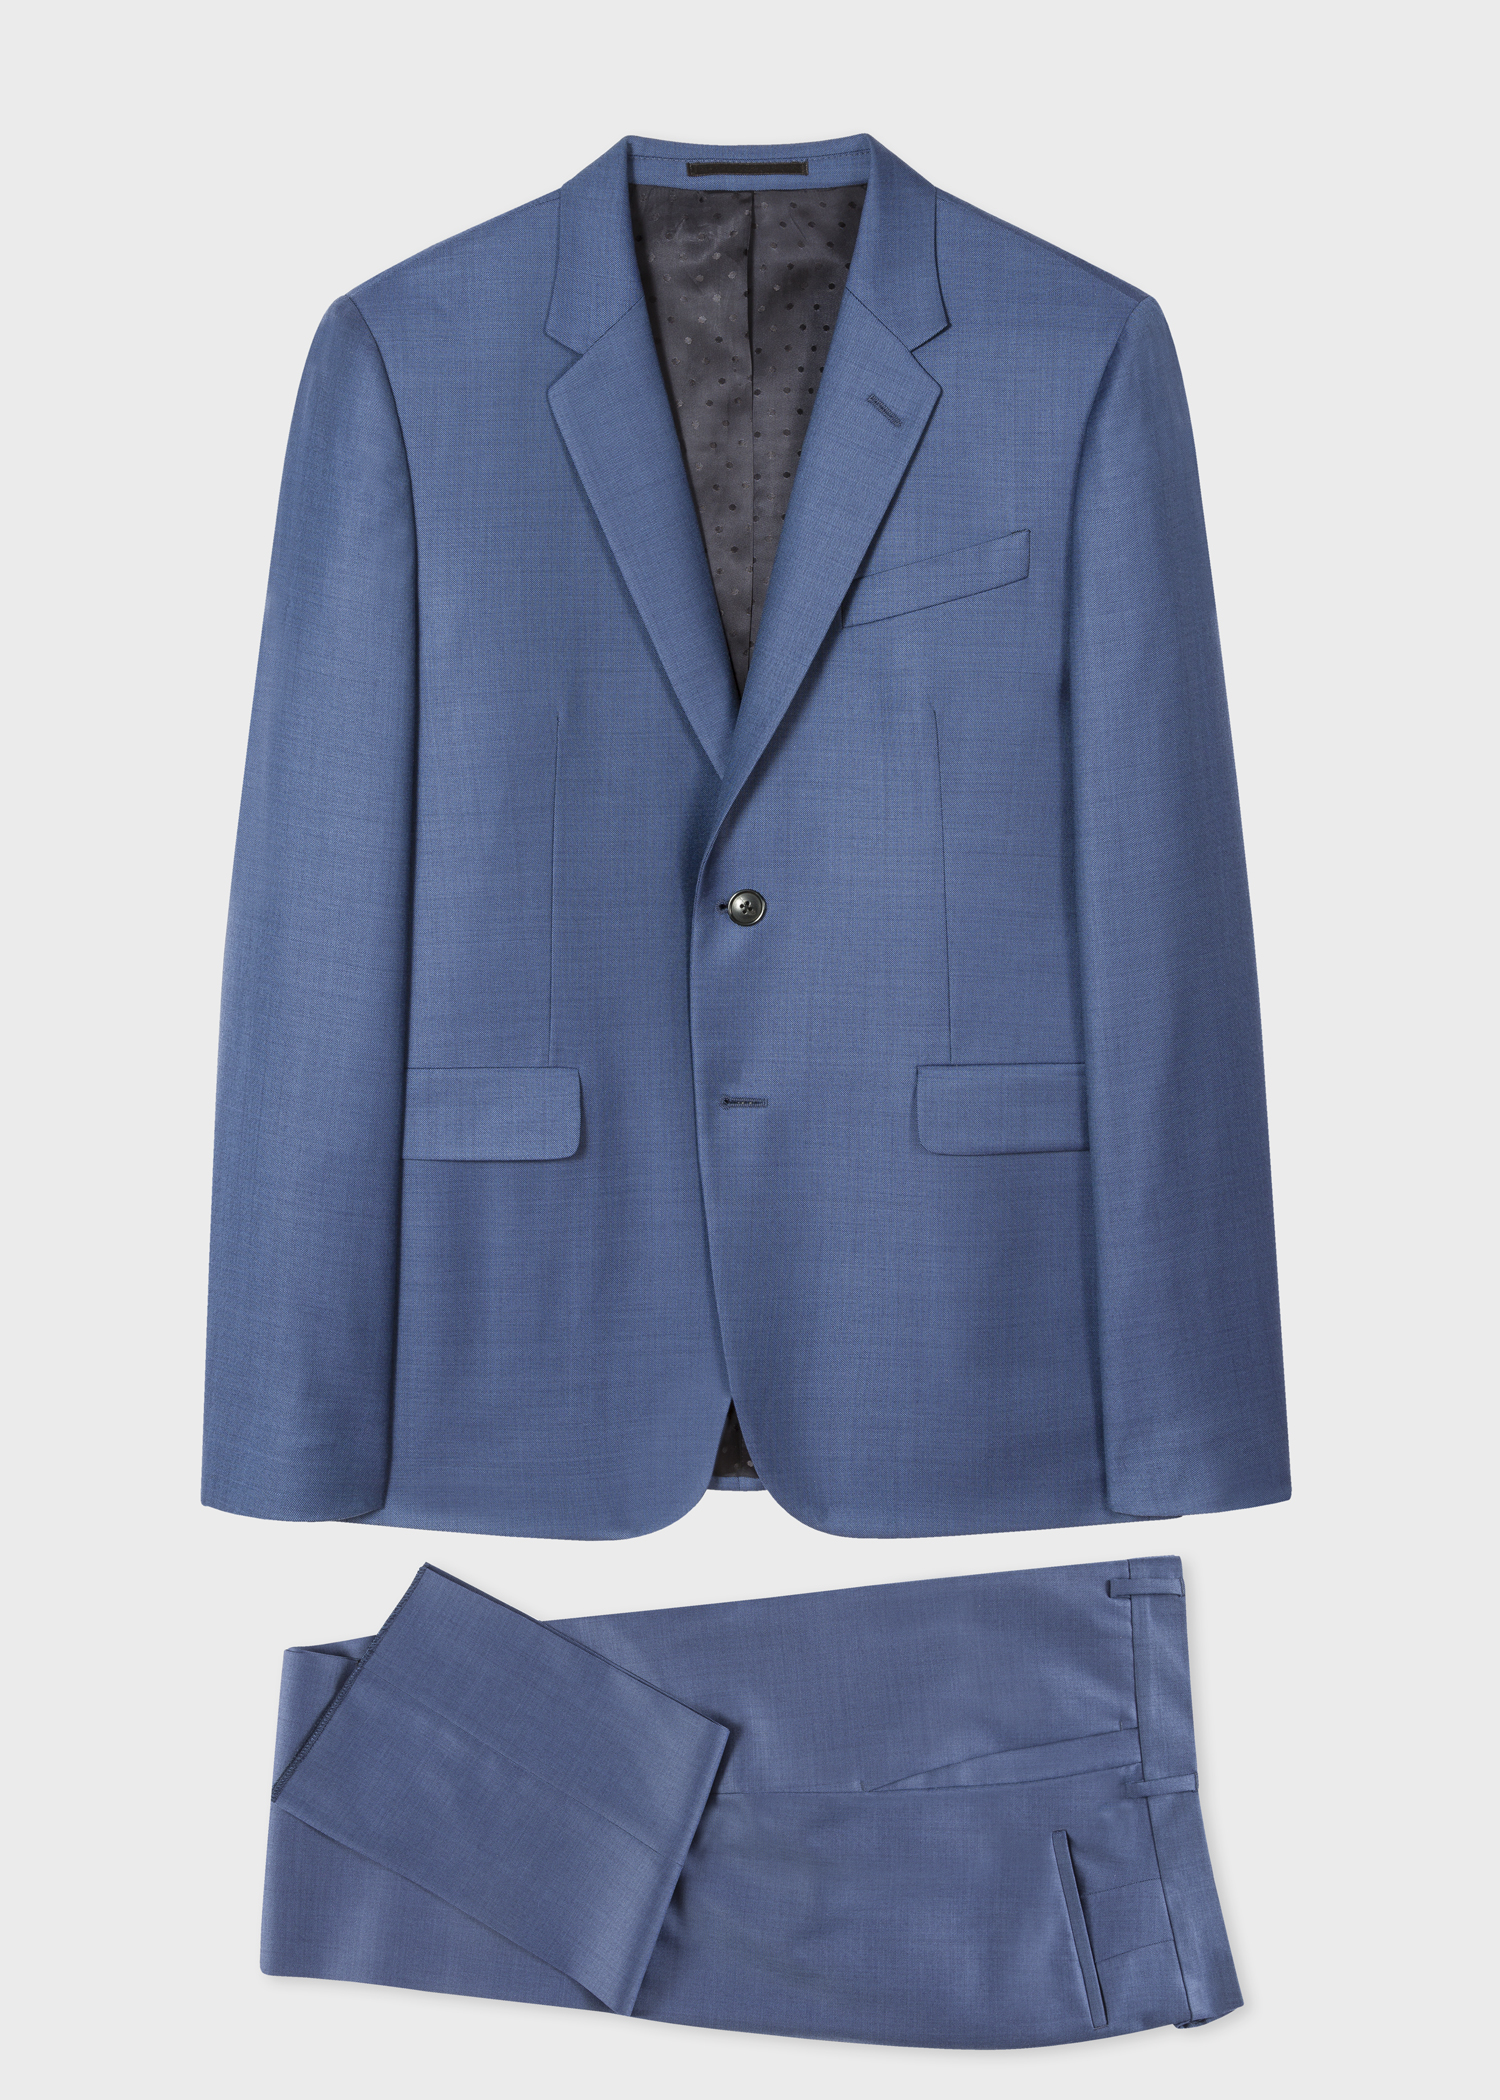 Shop Paul Smith Suits for Men - Obsessory